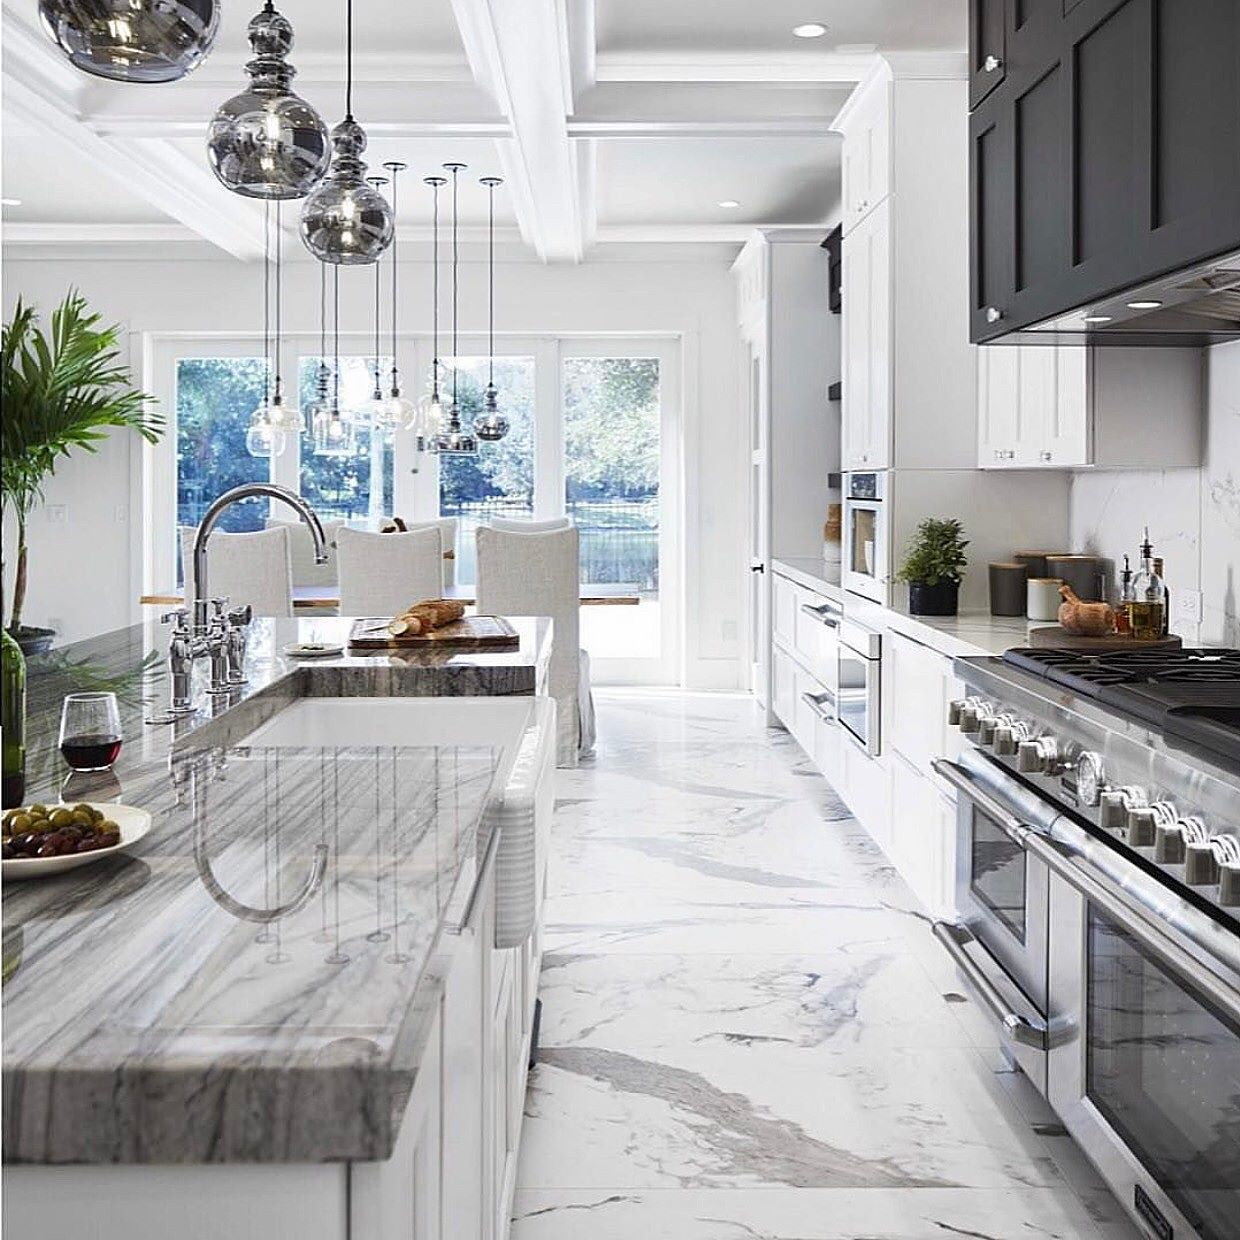 Kitchen goals Swipe to see my dream bathroom and follow me on ...